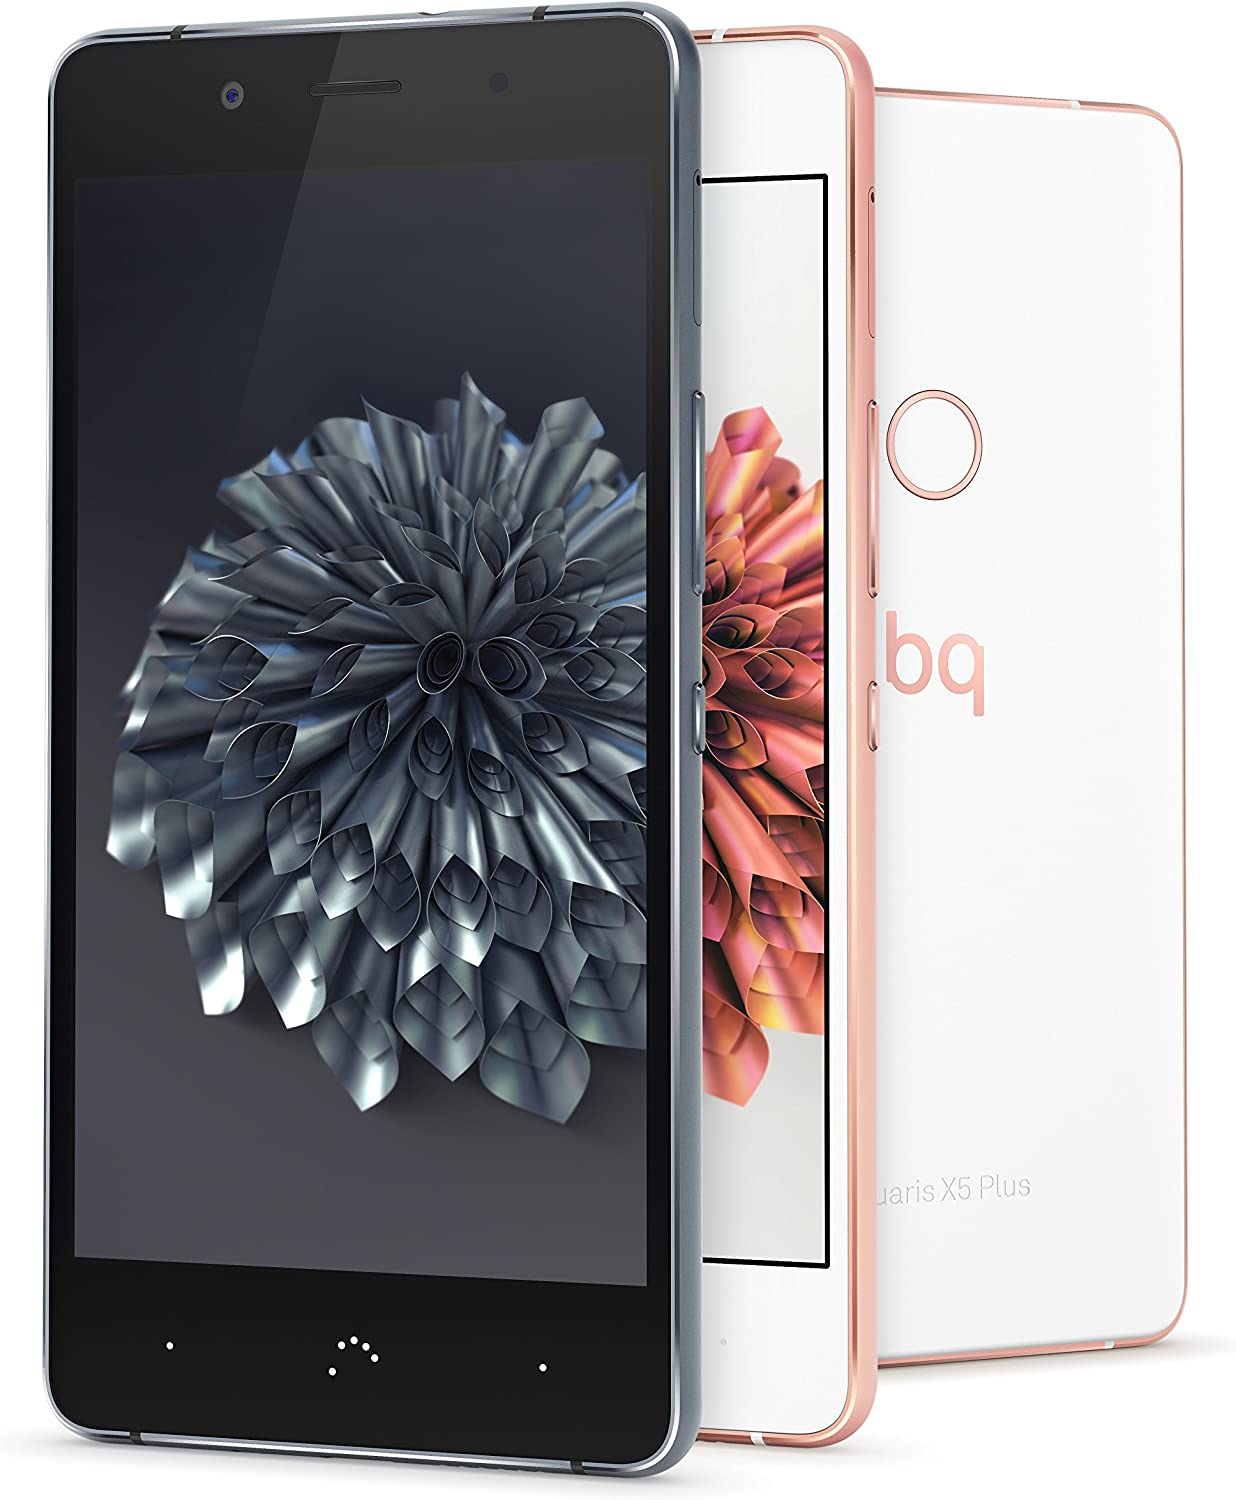 BQ Aquaris X5 Plus - Smartphone de 5in (4G LTE, Qualcomm ...